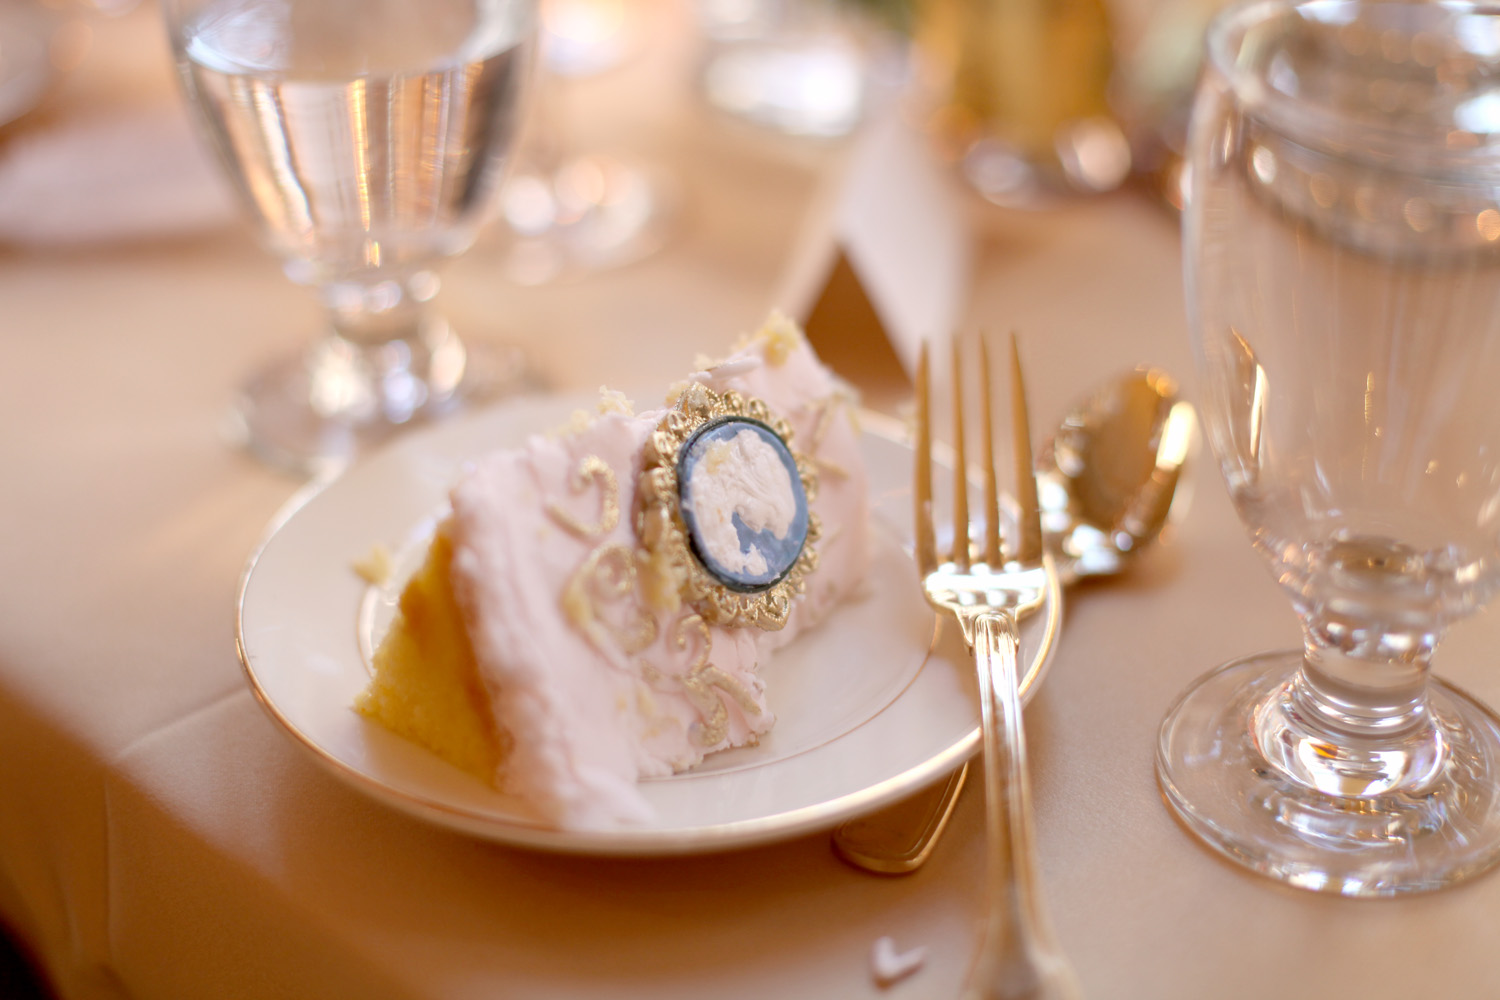 Gorgeous details! There was a lovely fondant cameo that was on my slice. I wrapped it in a napkin and took it home to my daughter. ;)